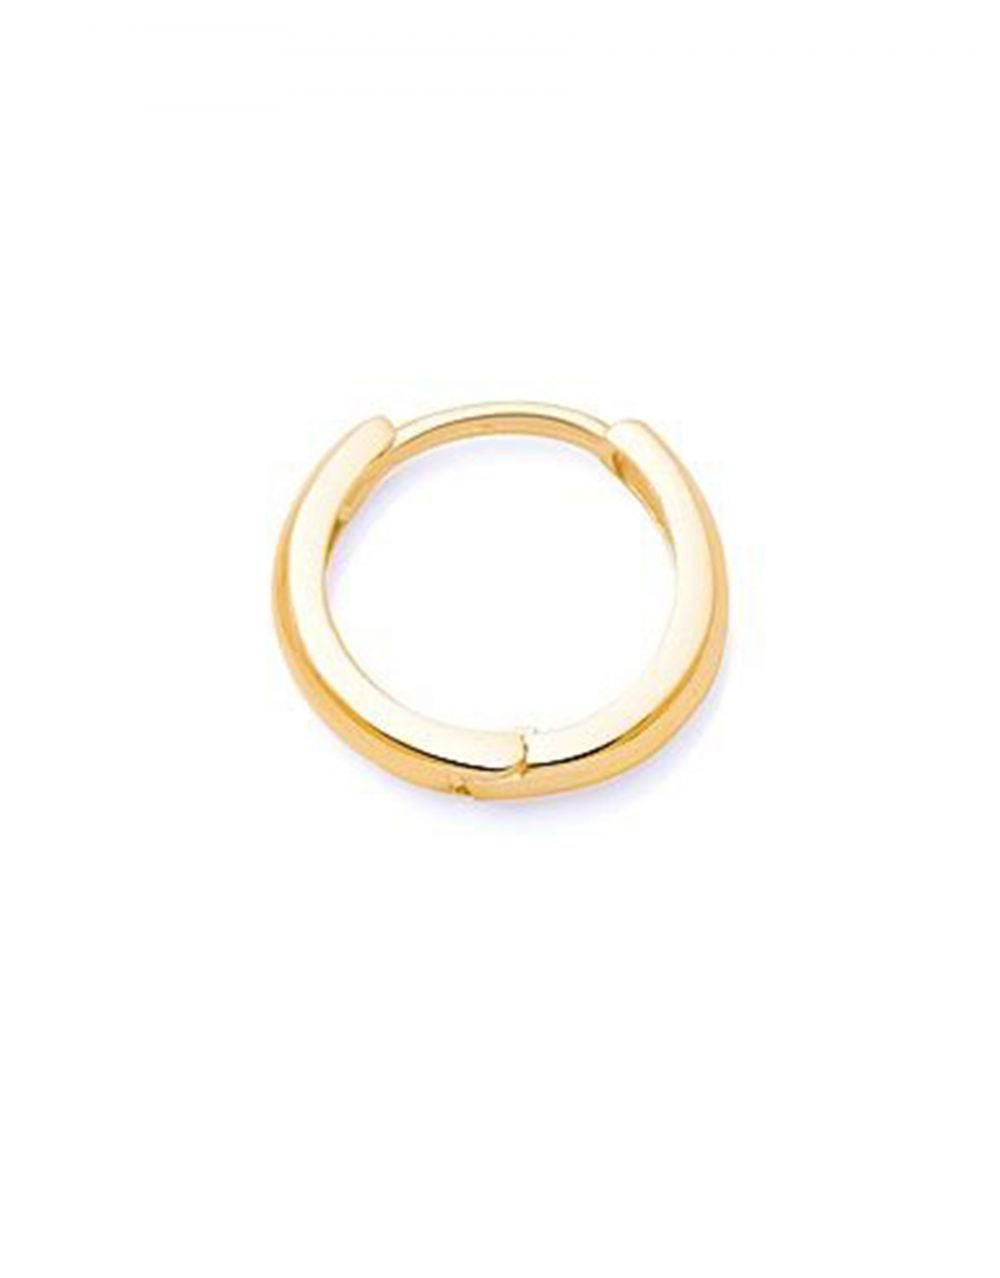 Mini Gold Hoop Piercing<br /><i><small>14K Yellow Gold</small></i><br />